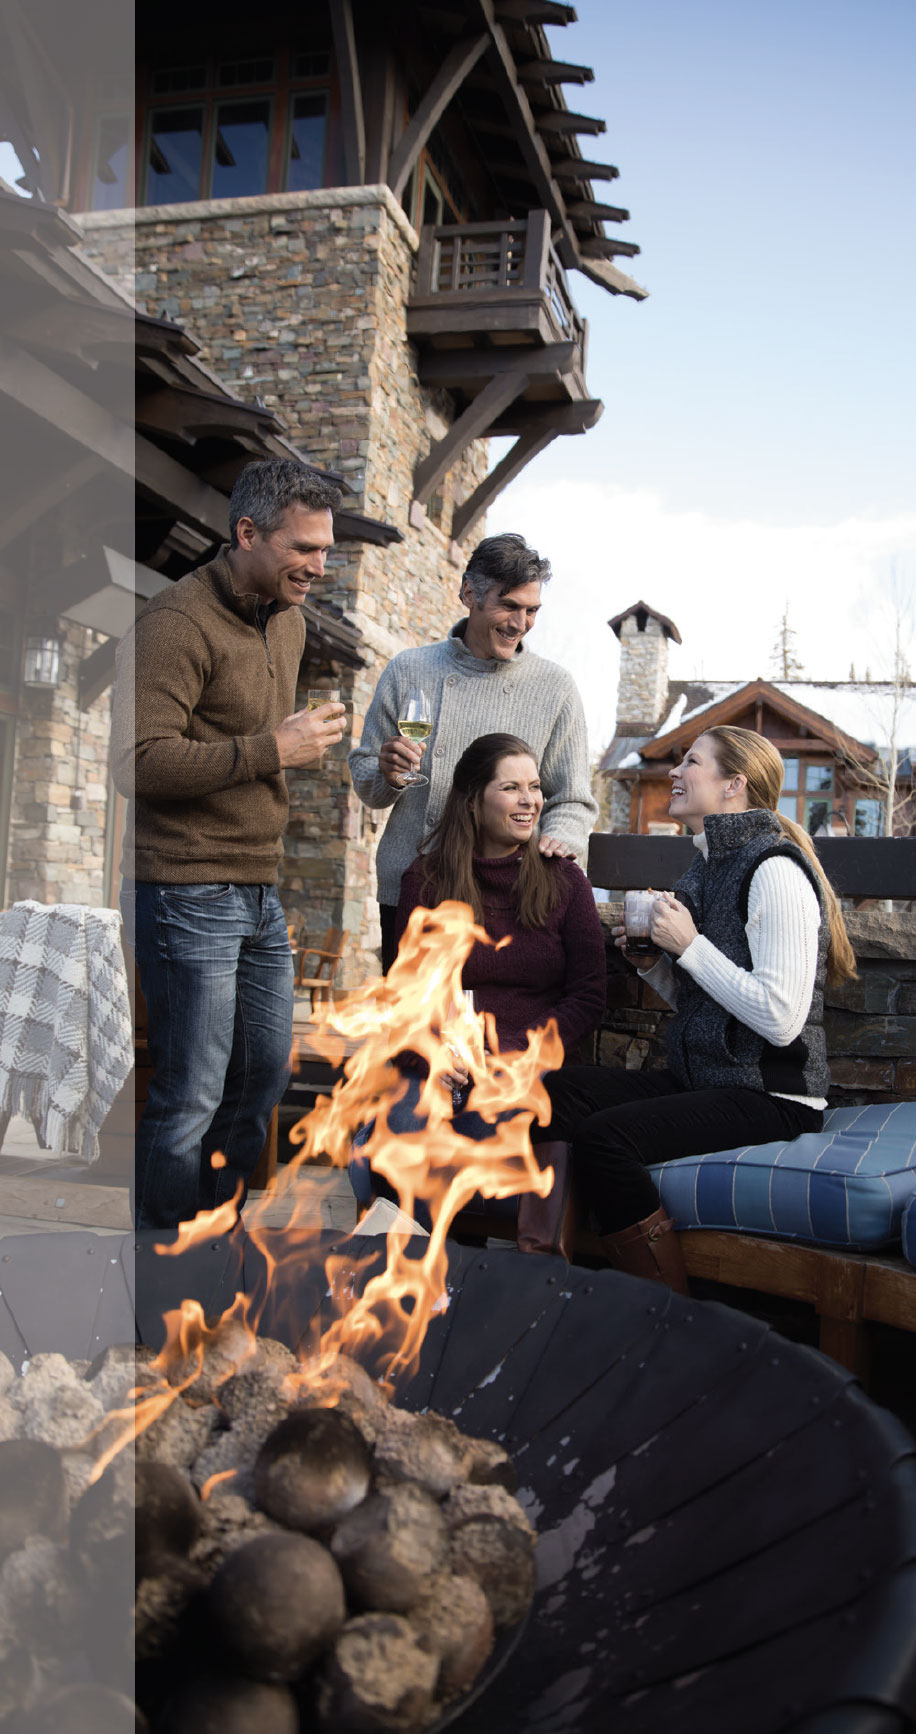 Talisker Club: A Private Wonderland- Park City Fire Pit and Group